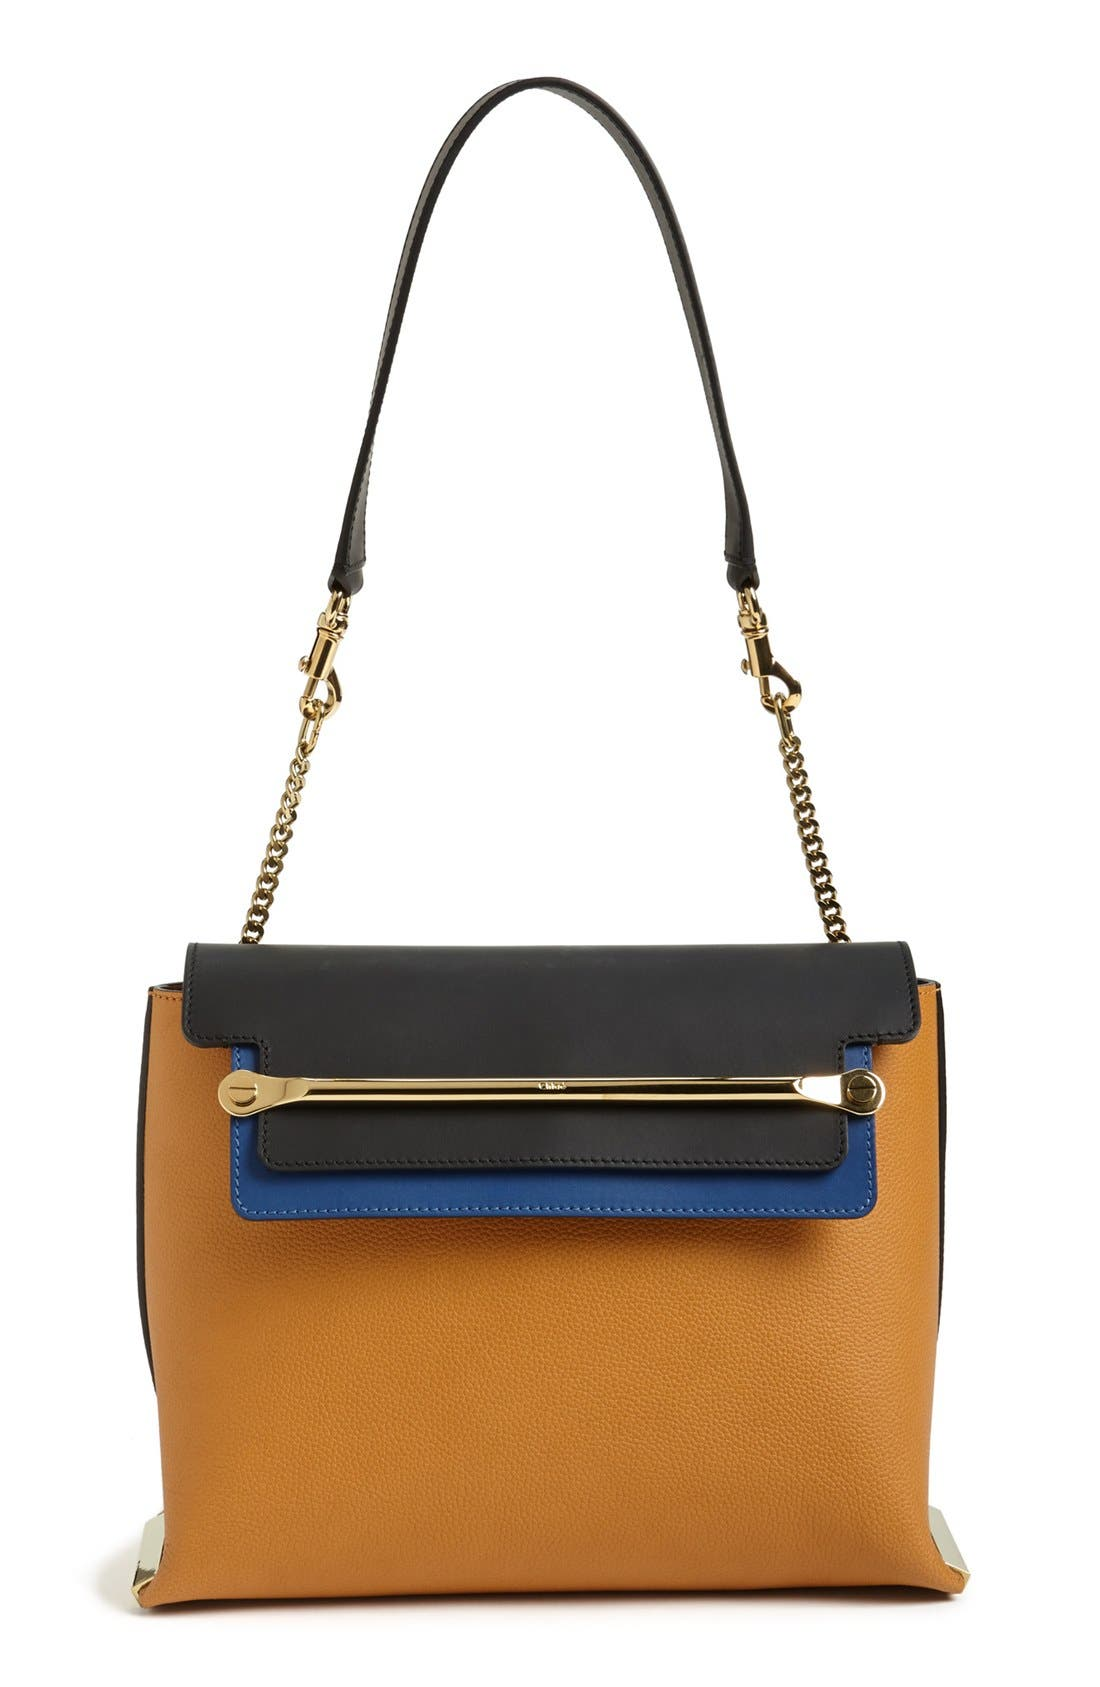 Main Image - Chloé 'Clare' Tricolor Leather Shoulder Bag